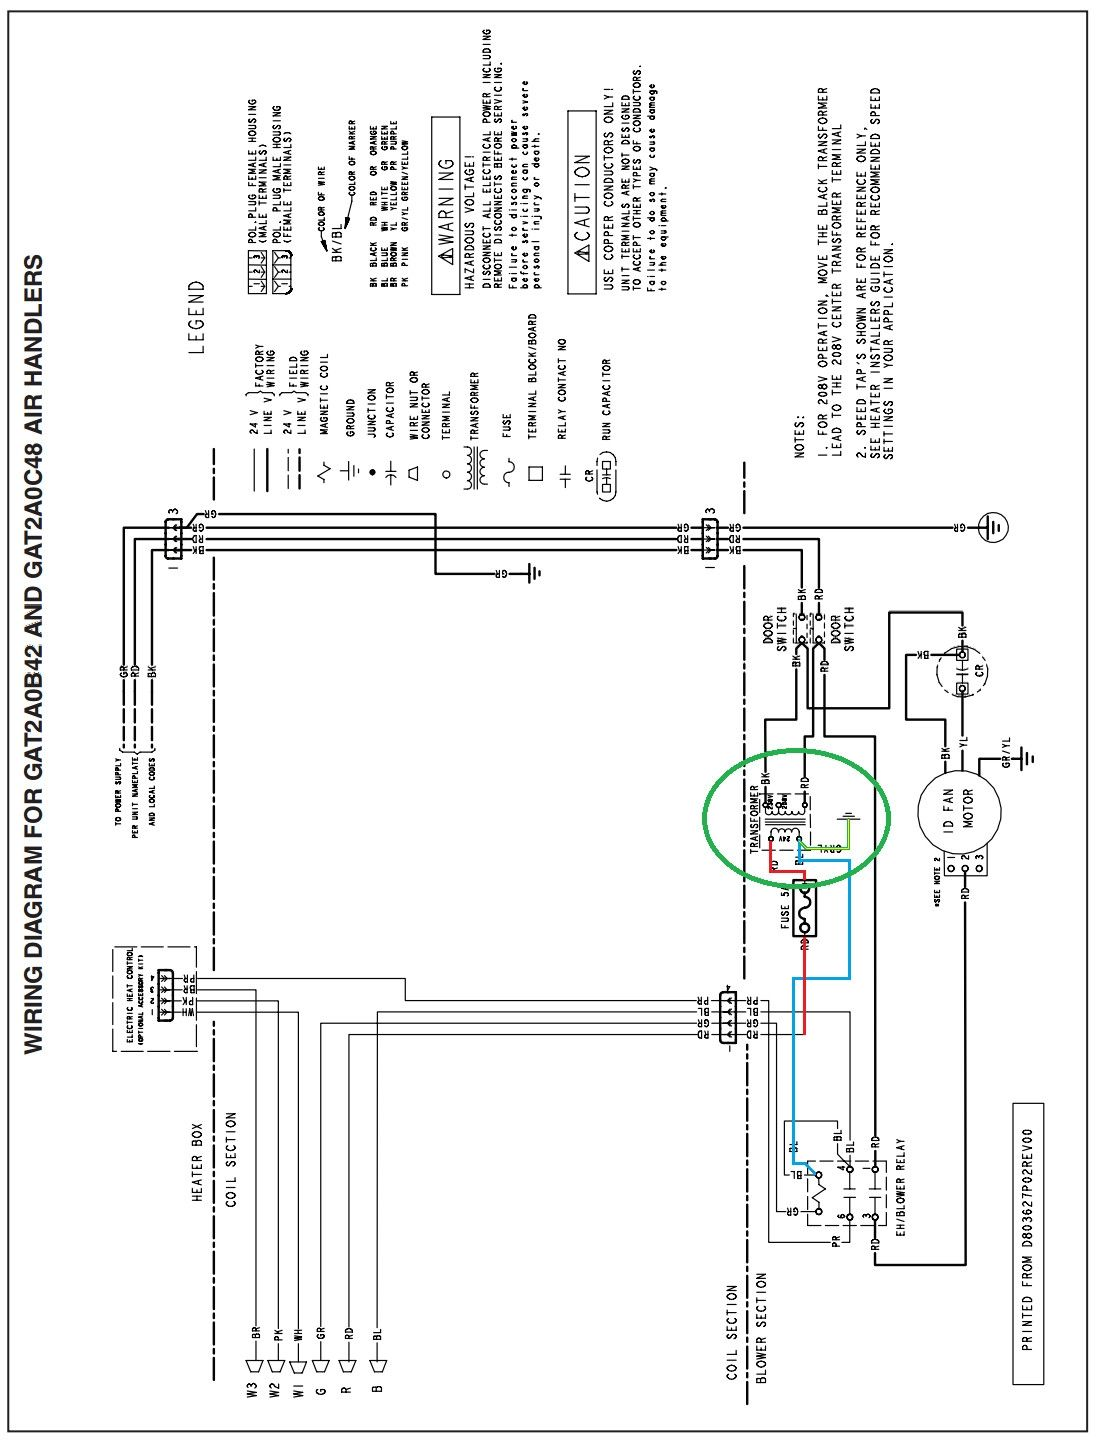 Marvelous Trane Commercial Air Handler Wiring Diagram Wiring Diagram Data Wiring Cloud Brecesaoduqqnet